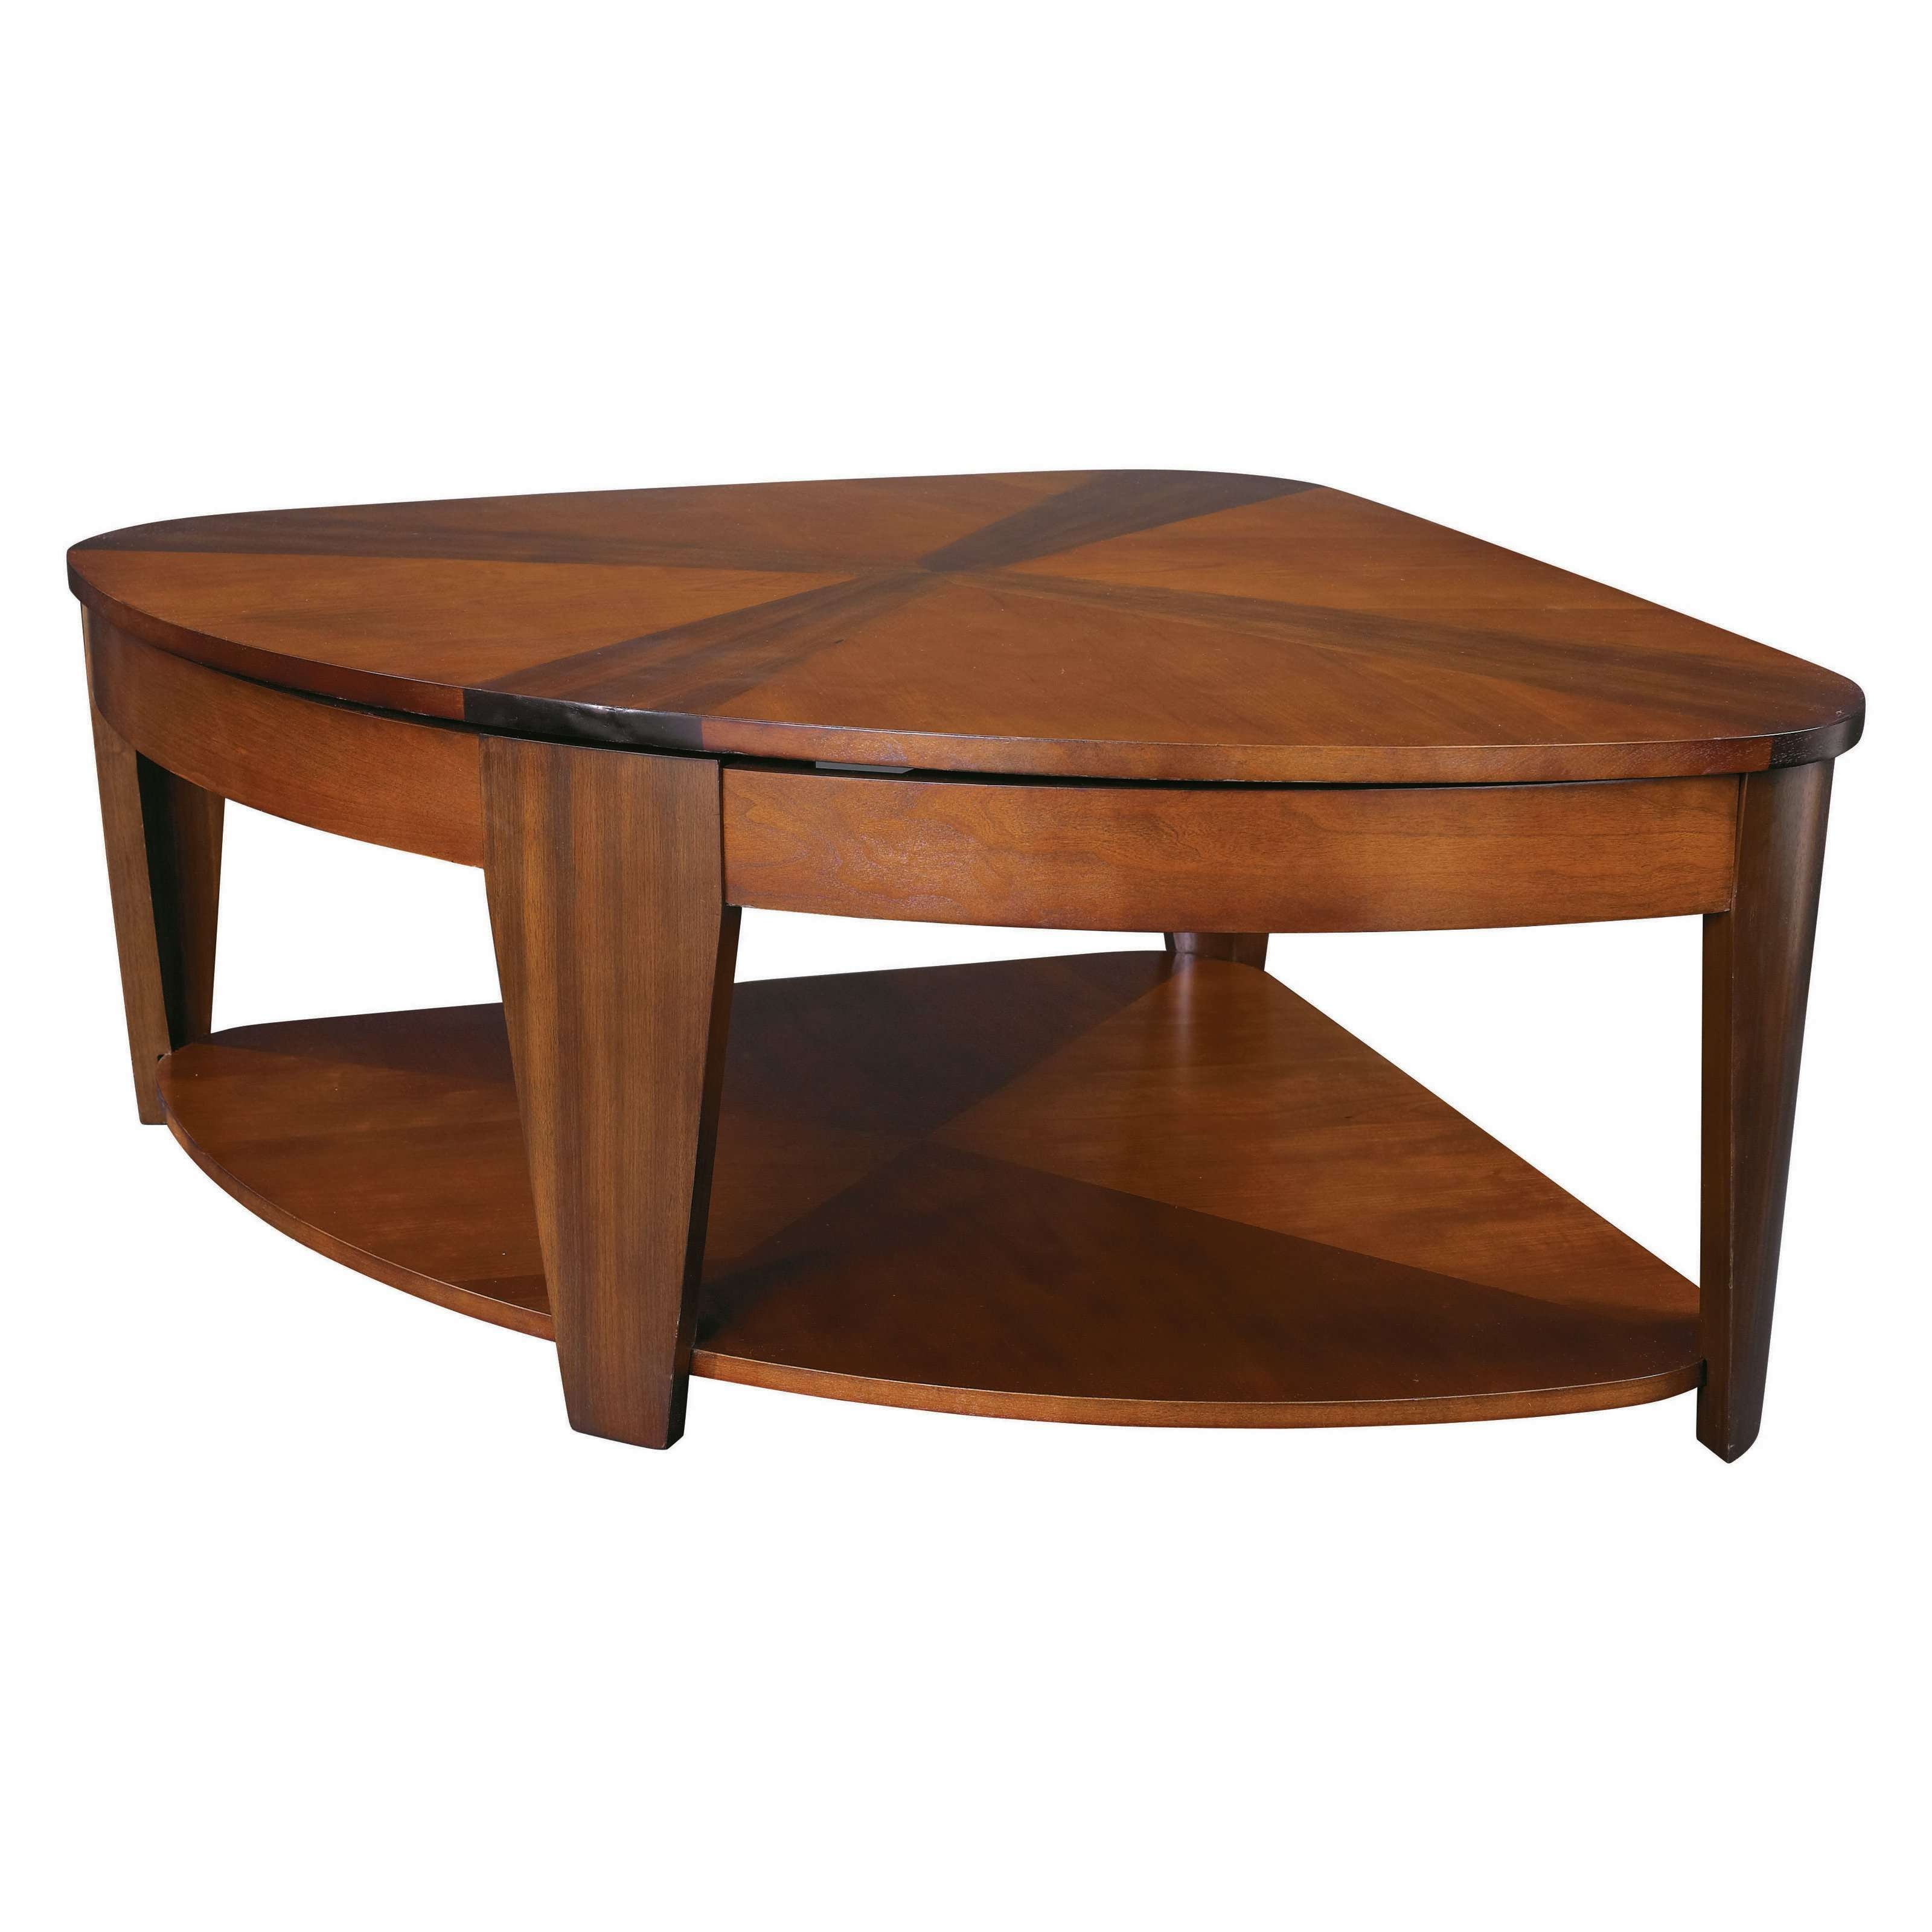 Famous Raise Up Coffee Tables Within Coffee Tables : Trendy Contemporary Dining Room Glass Top Wood (View 13 of 20)